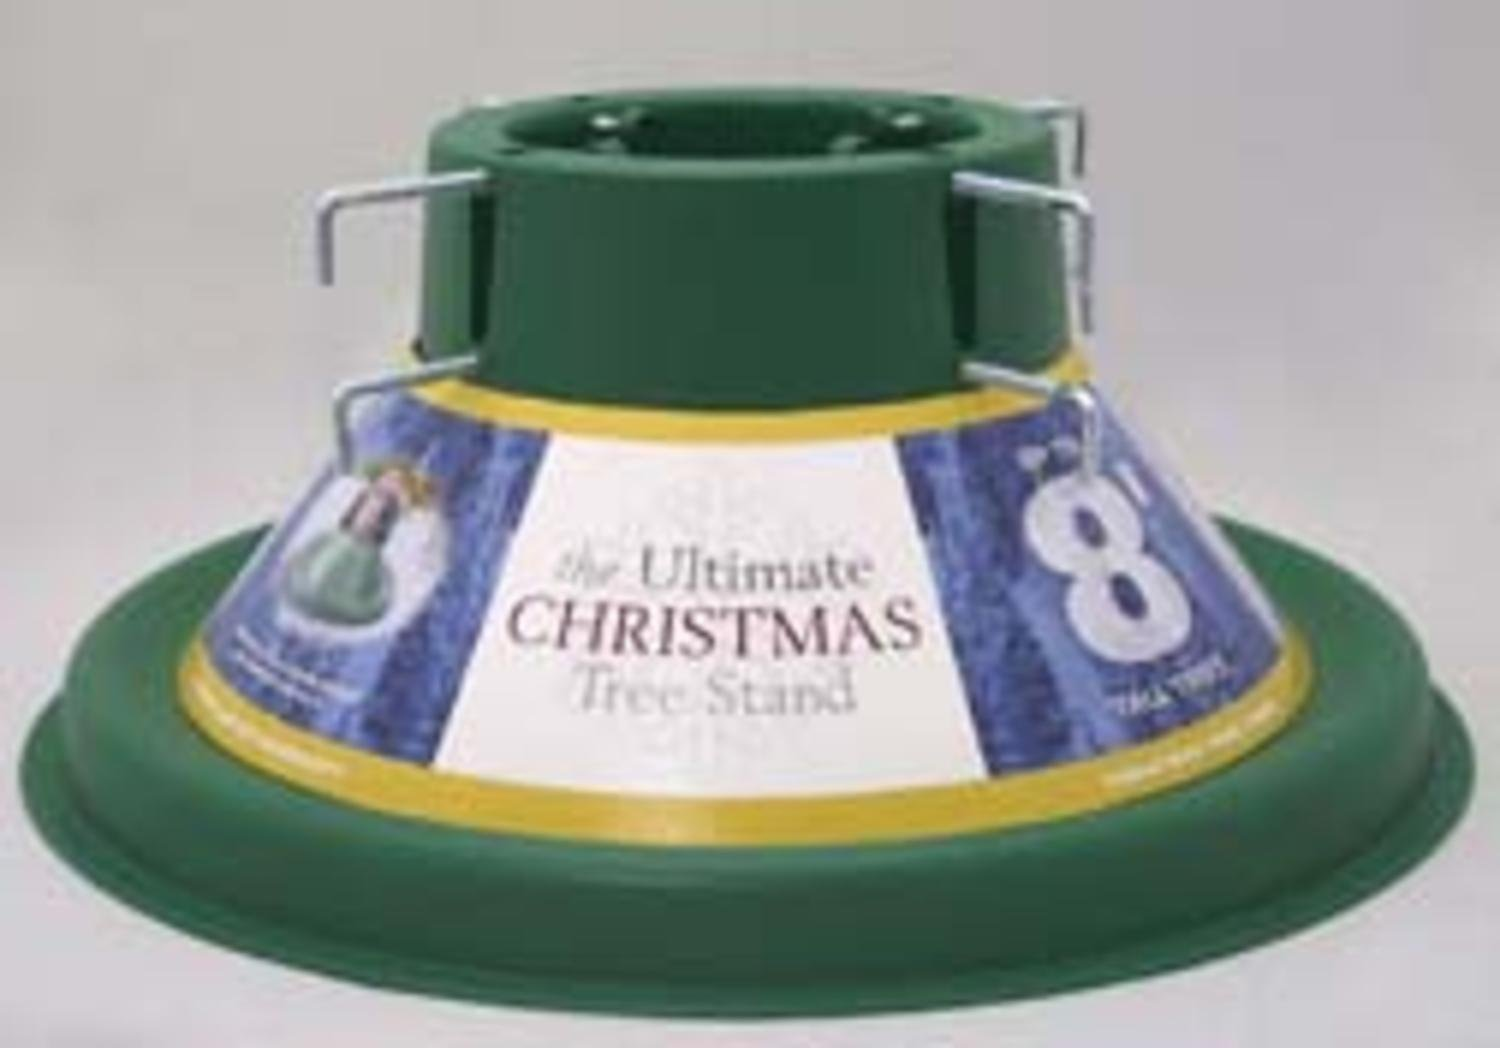 HMS Green Ultimate Christmas Tree Stand For 8 Foot Real Live Trees